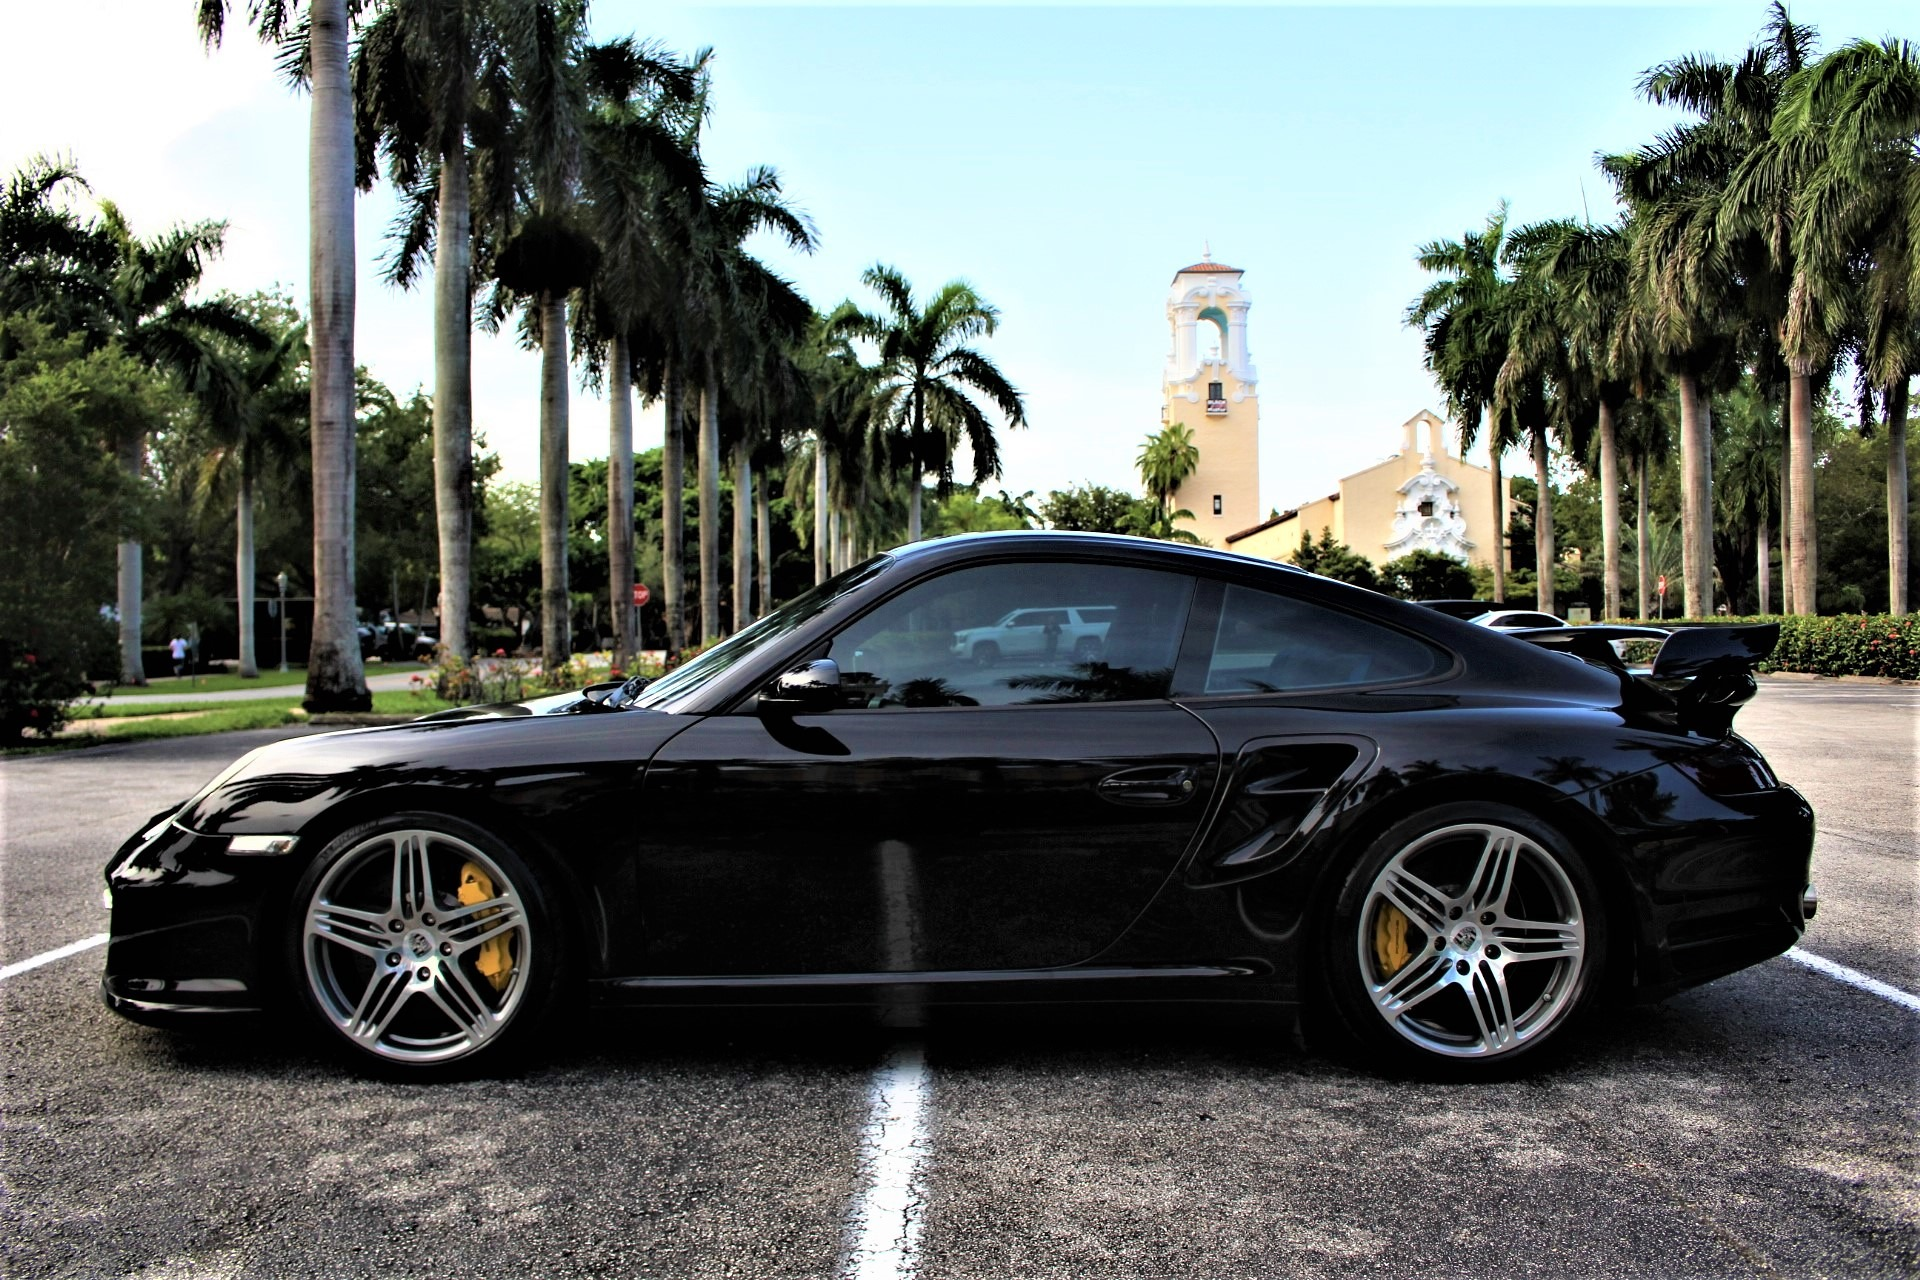 Used 2007 Porsche 911 Turbo for sale Sold at The Gables Sports Cars in Miami FL 33146 2